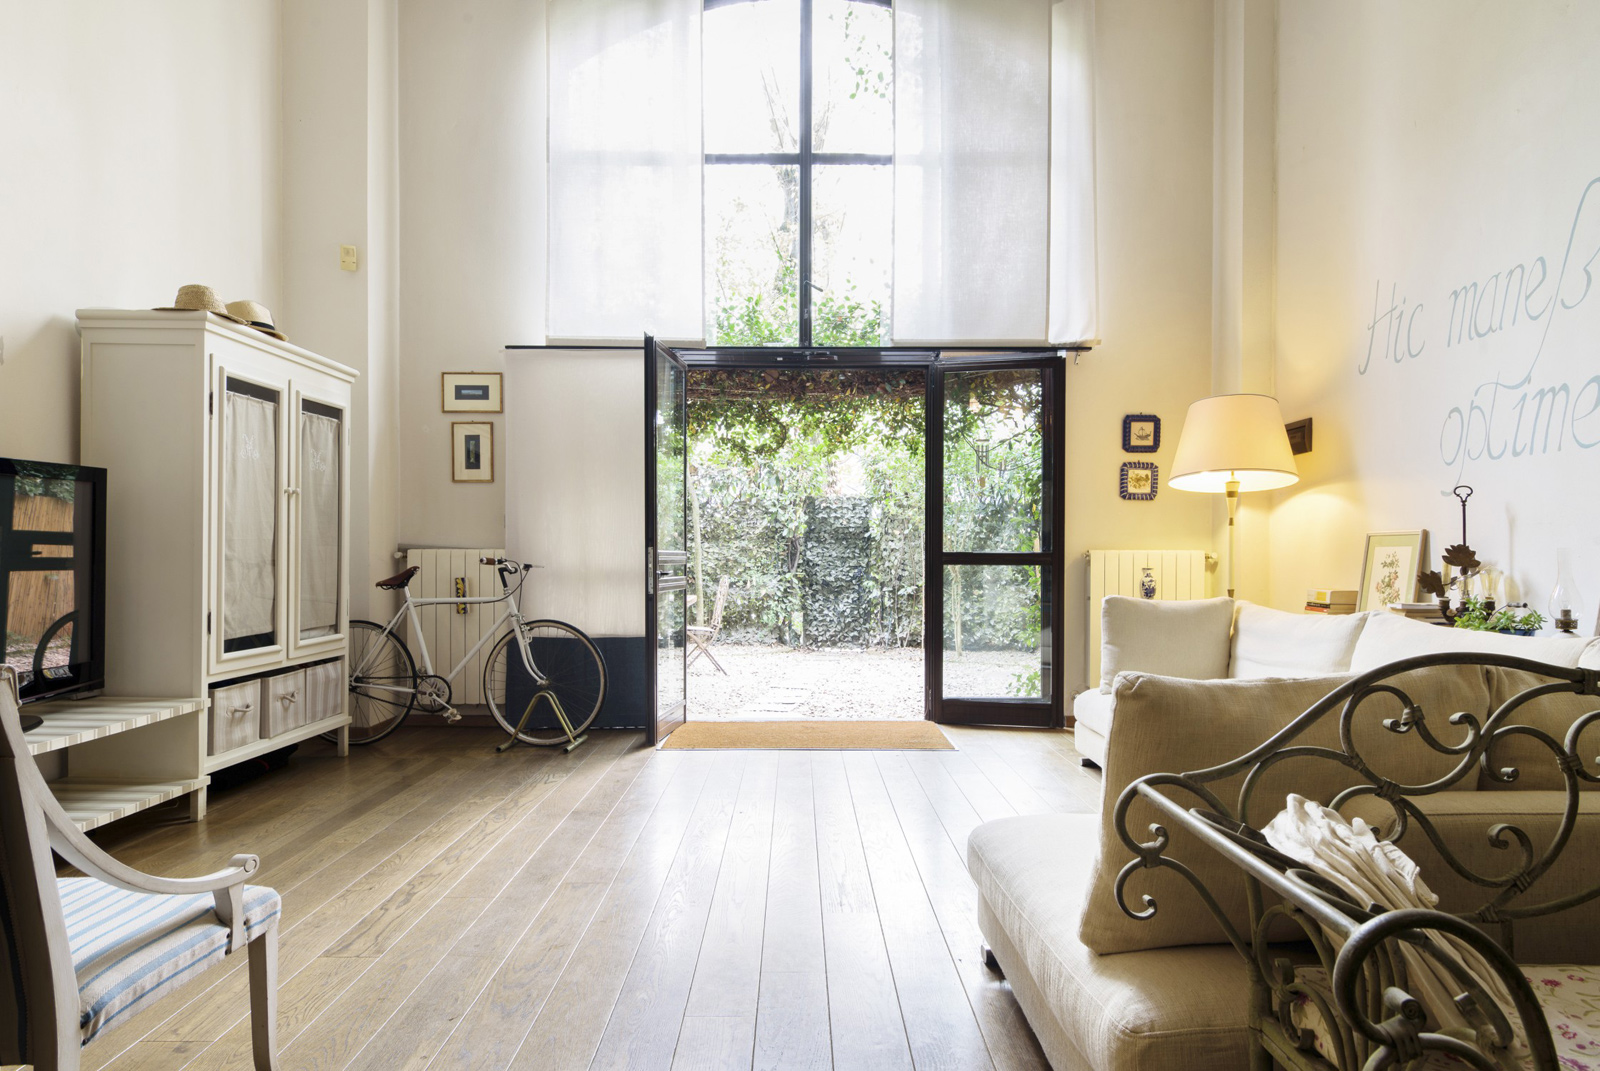 Milan aparment for rent via Airbnb converted convent